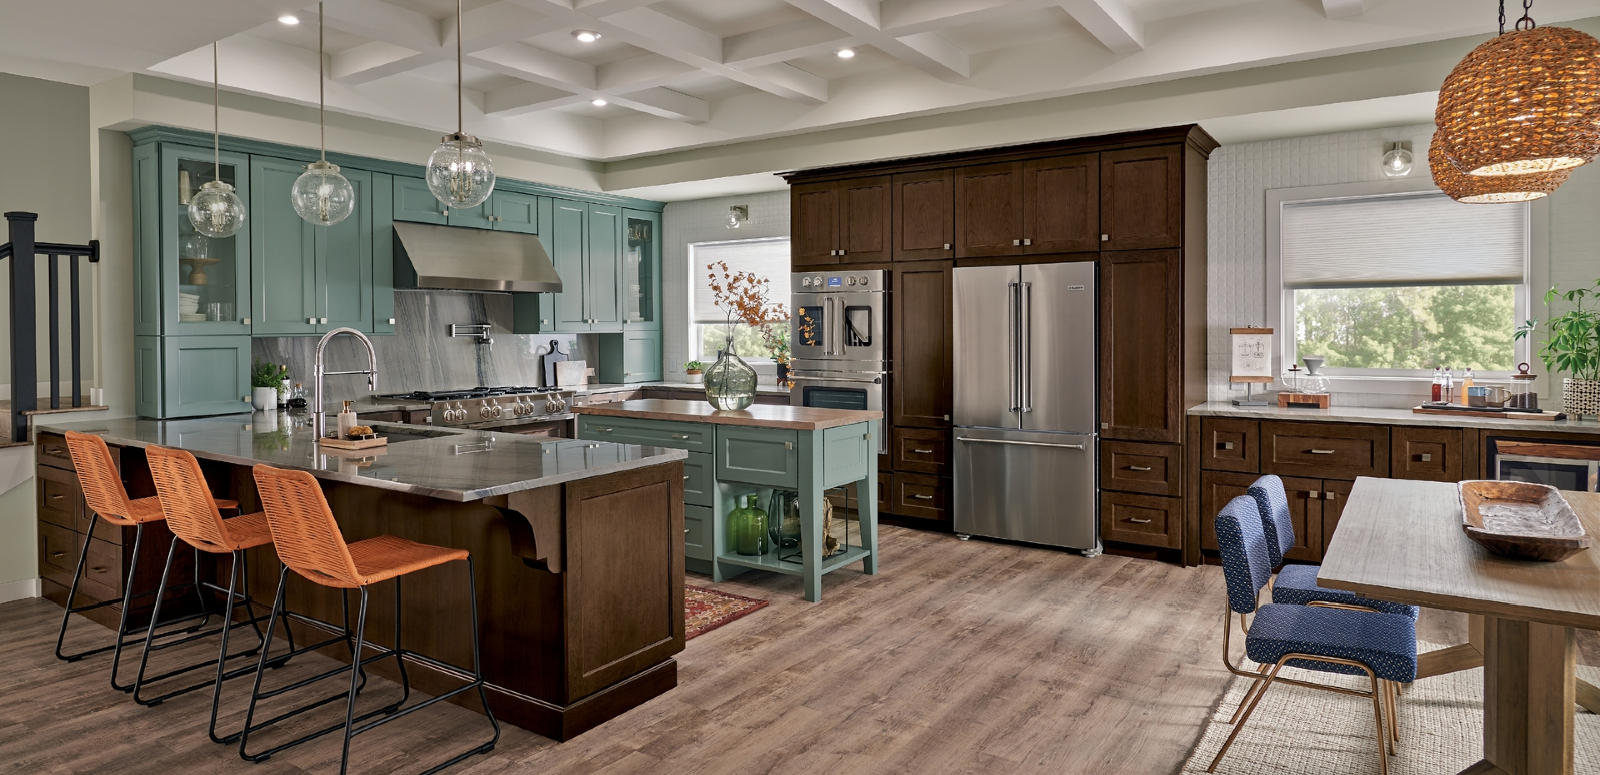 Kraftmaid Cabinetry Quality Cabinets For Kitchen Bathroom